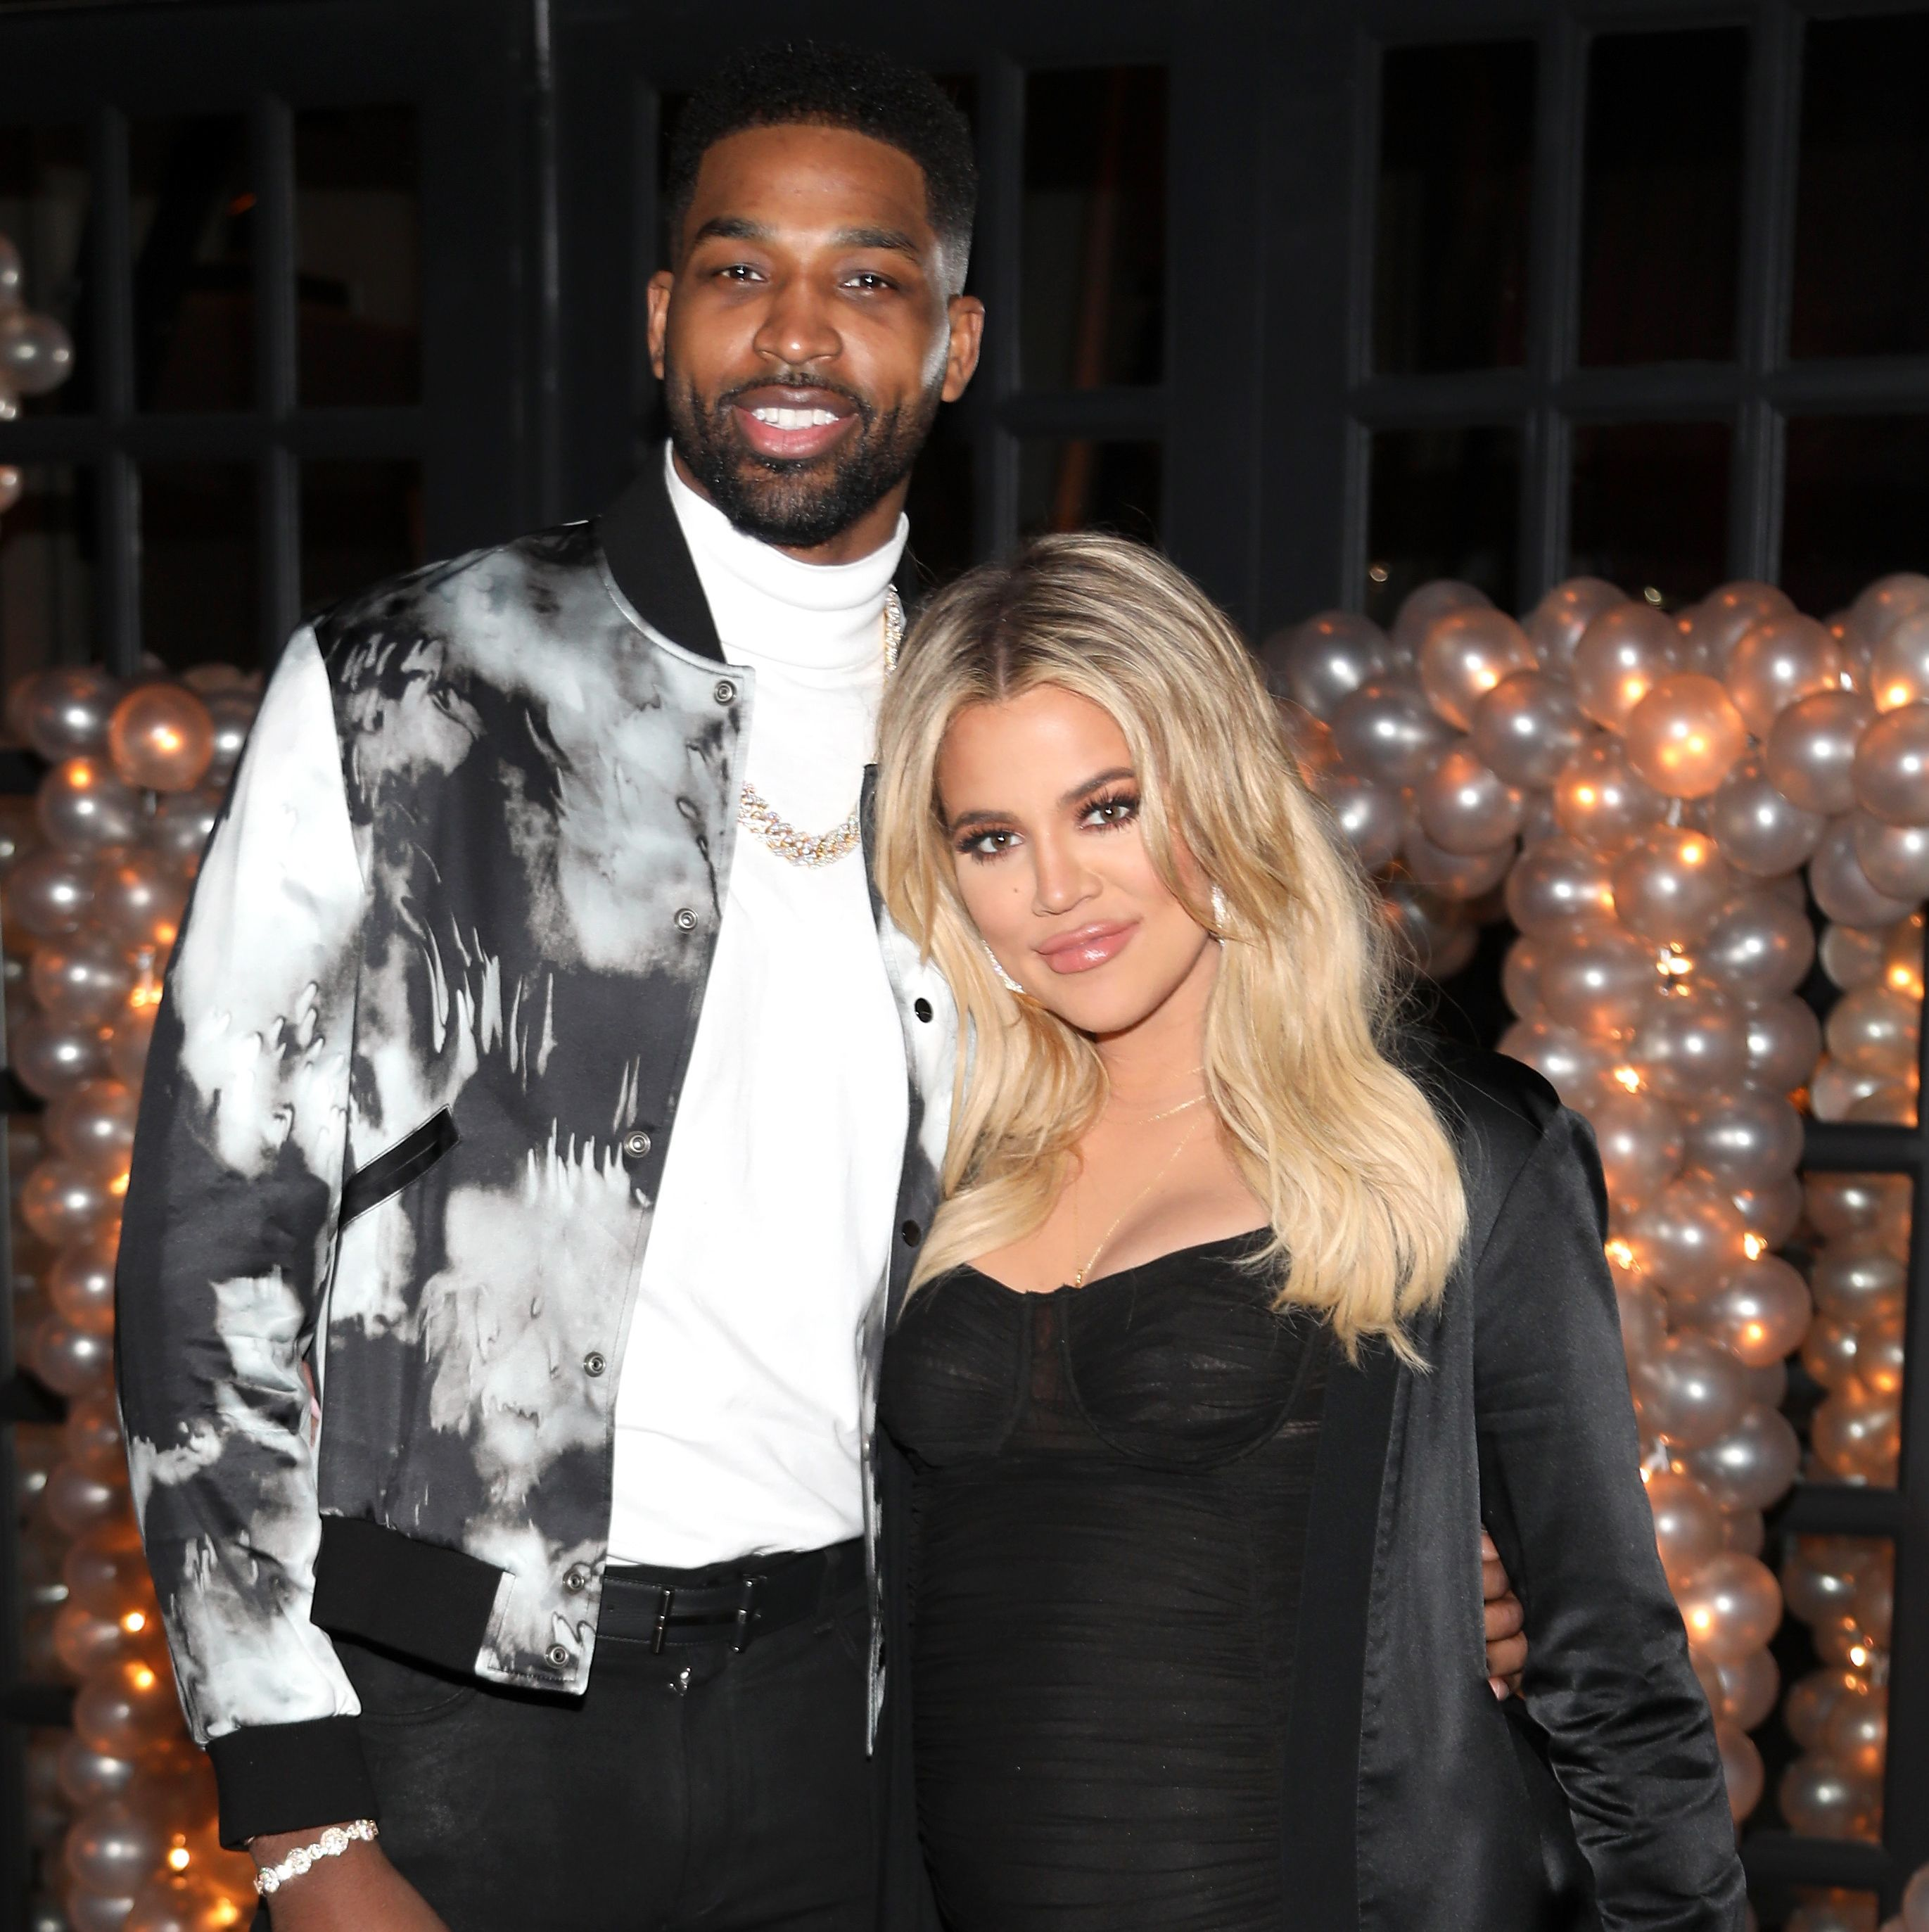 Khloé Kardashian and Tristan Thompson Have Reportedly Broken Up